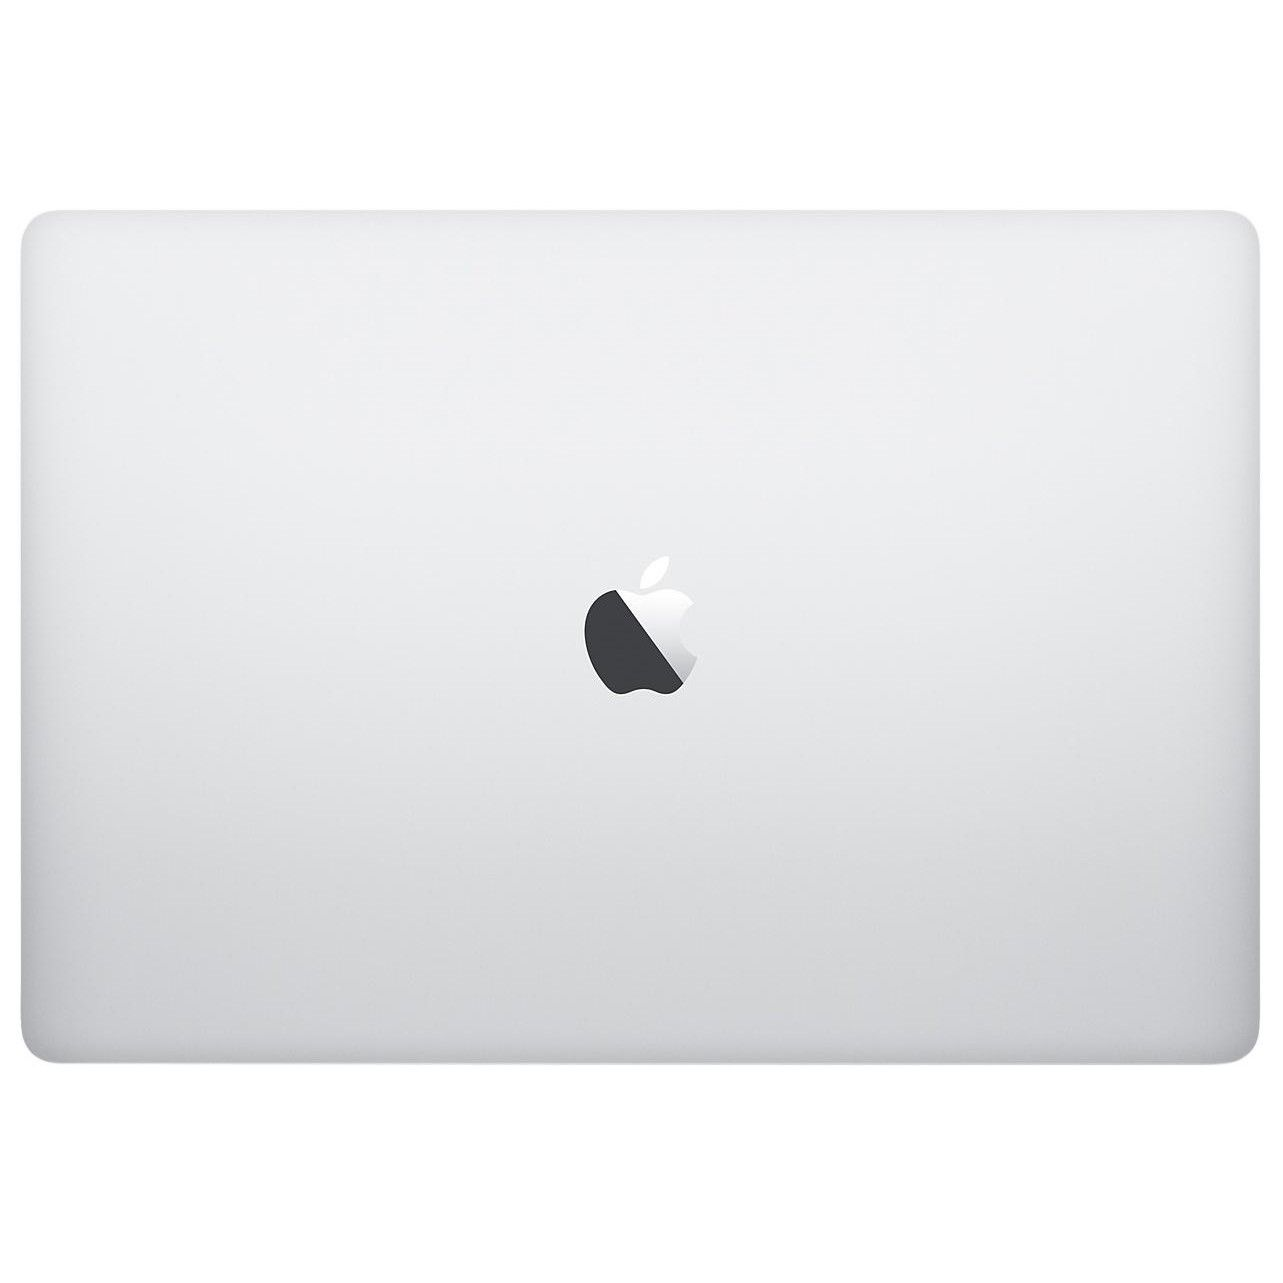 "Apple MacBook Pro 15"" Touch Bar 256 GB SSD Silver (MPTU2), картинка 4"